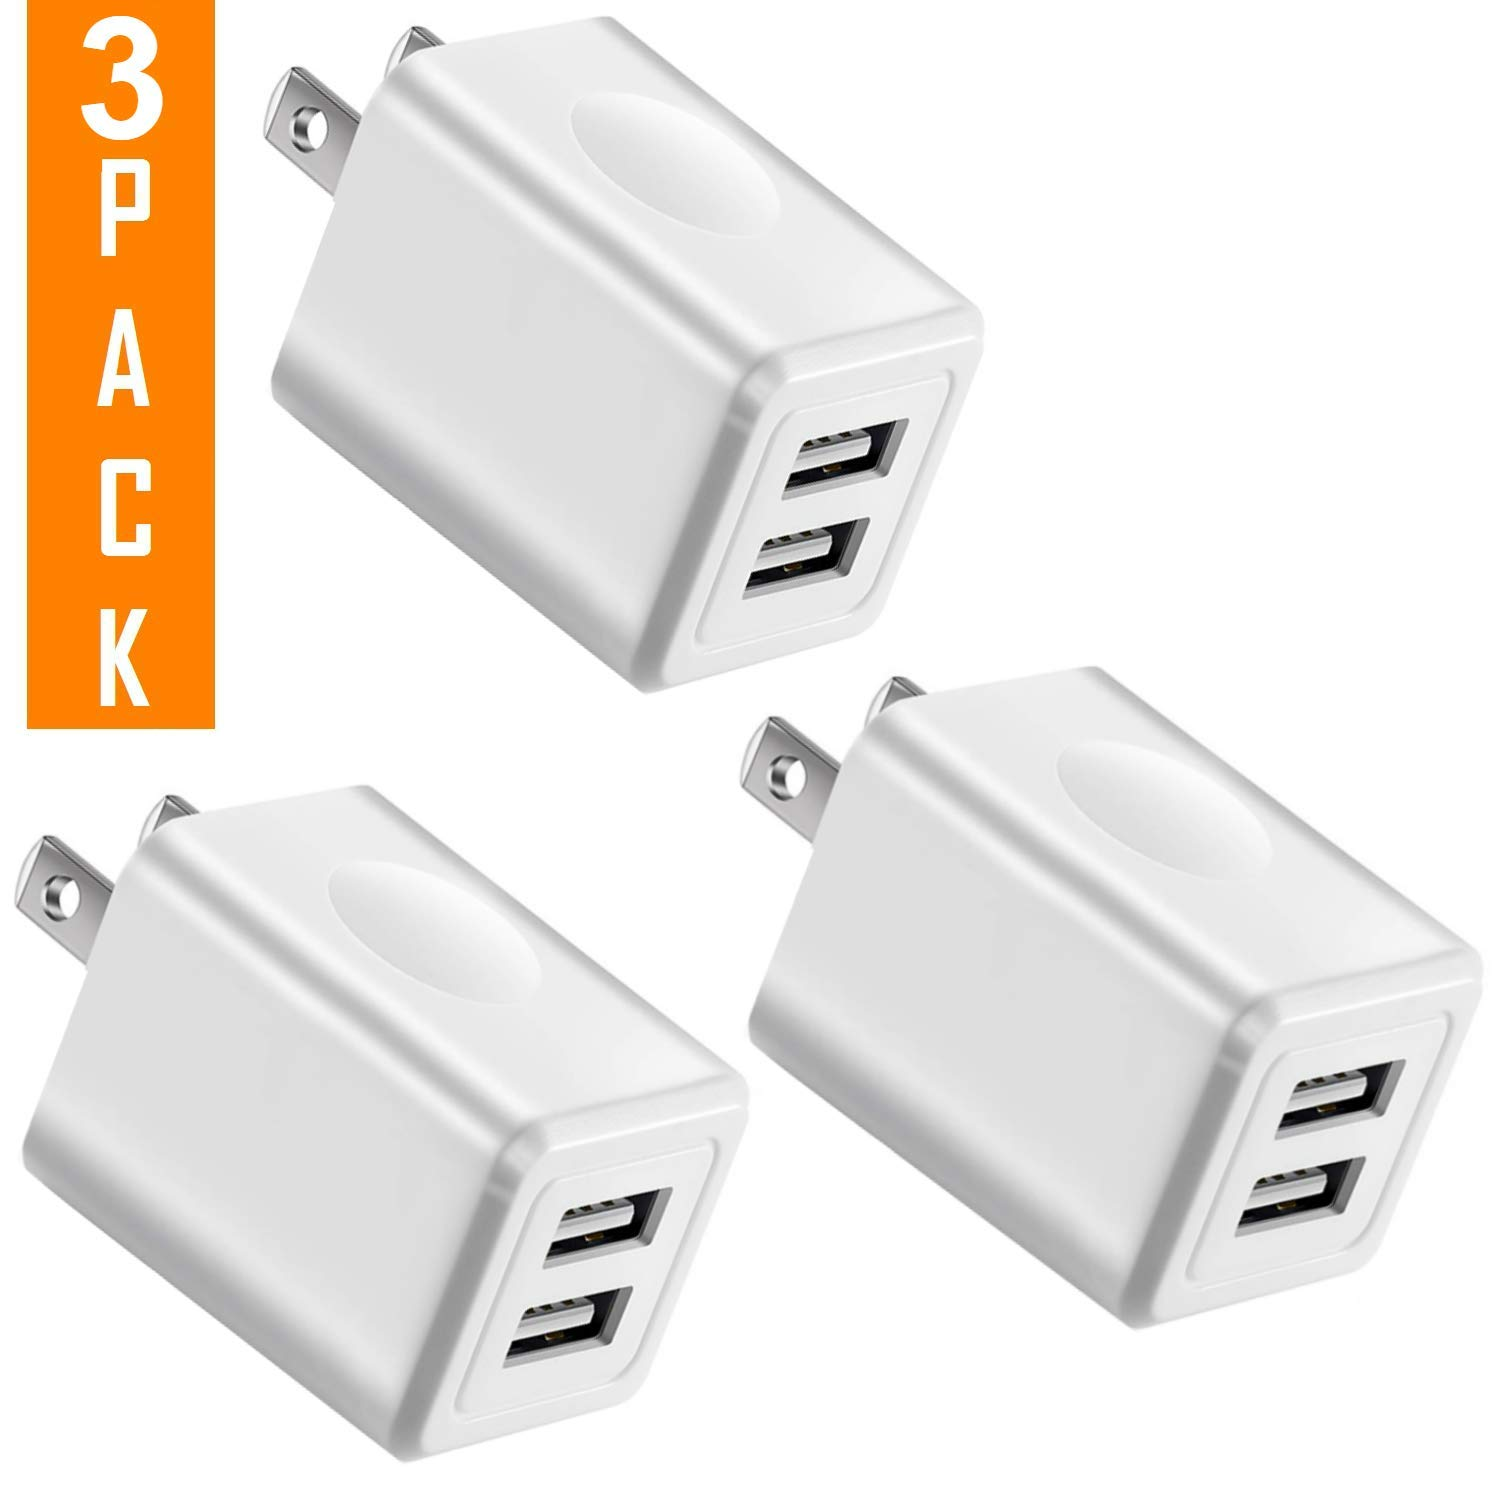 Charger, 2.1A/5V Universal Dual Port USB 2-Port Plug Wall Charger Plug Power Adapter Fast Charging Cube (3-Pack) White